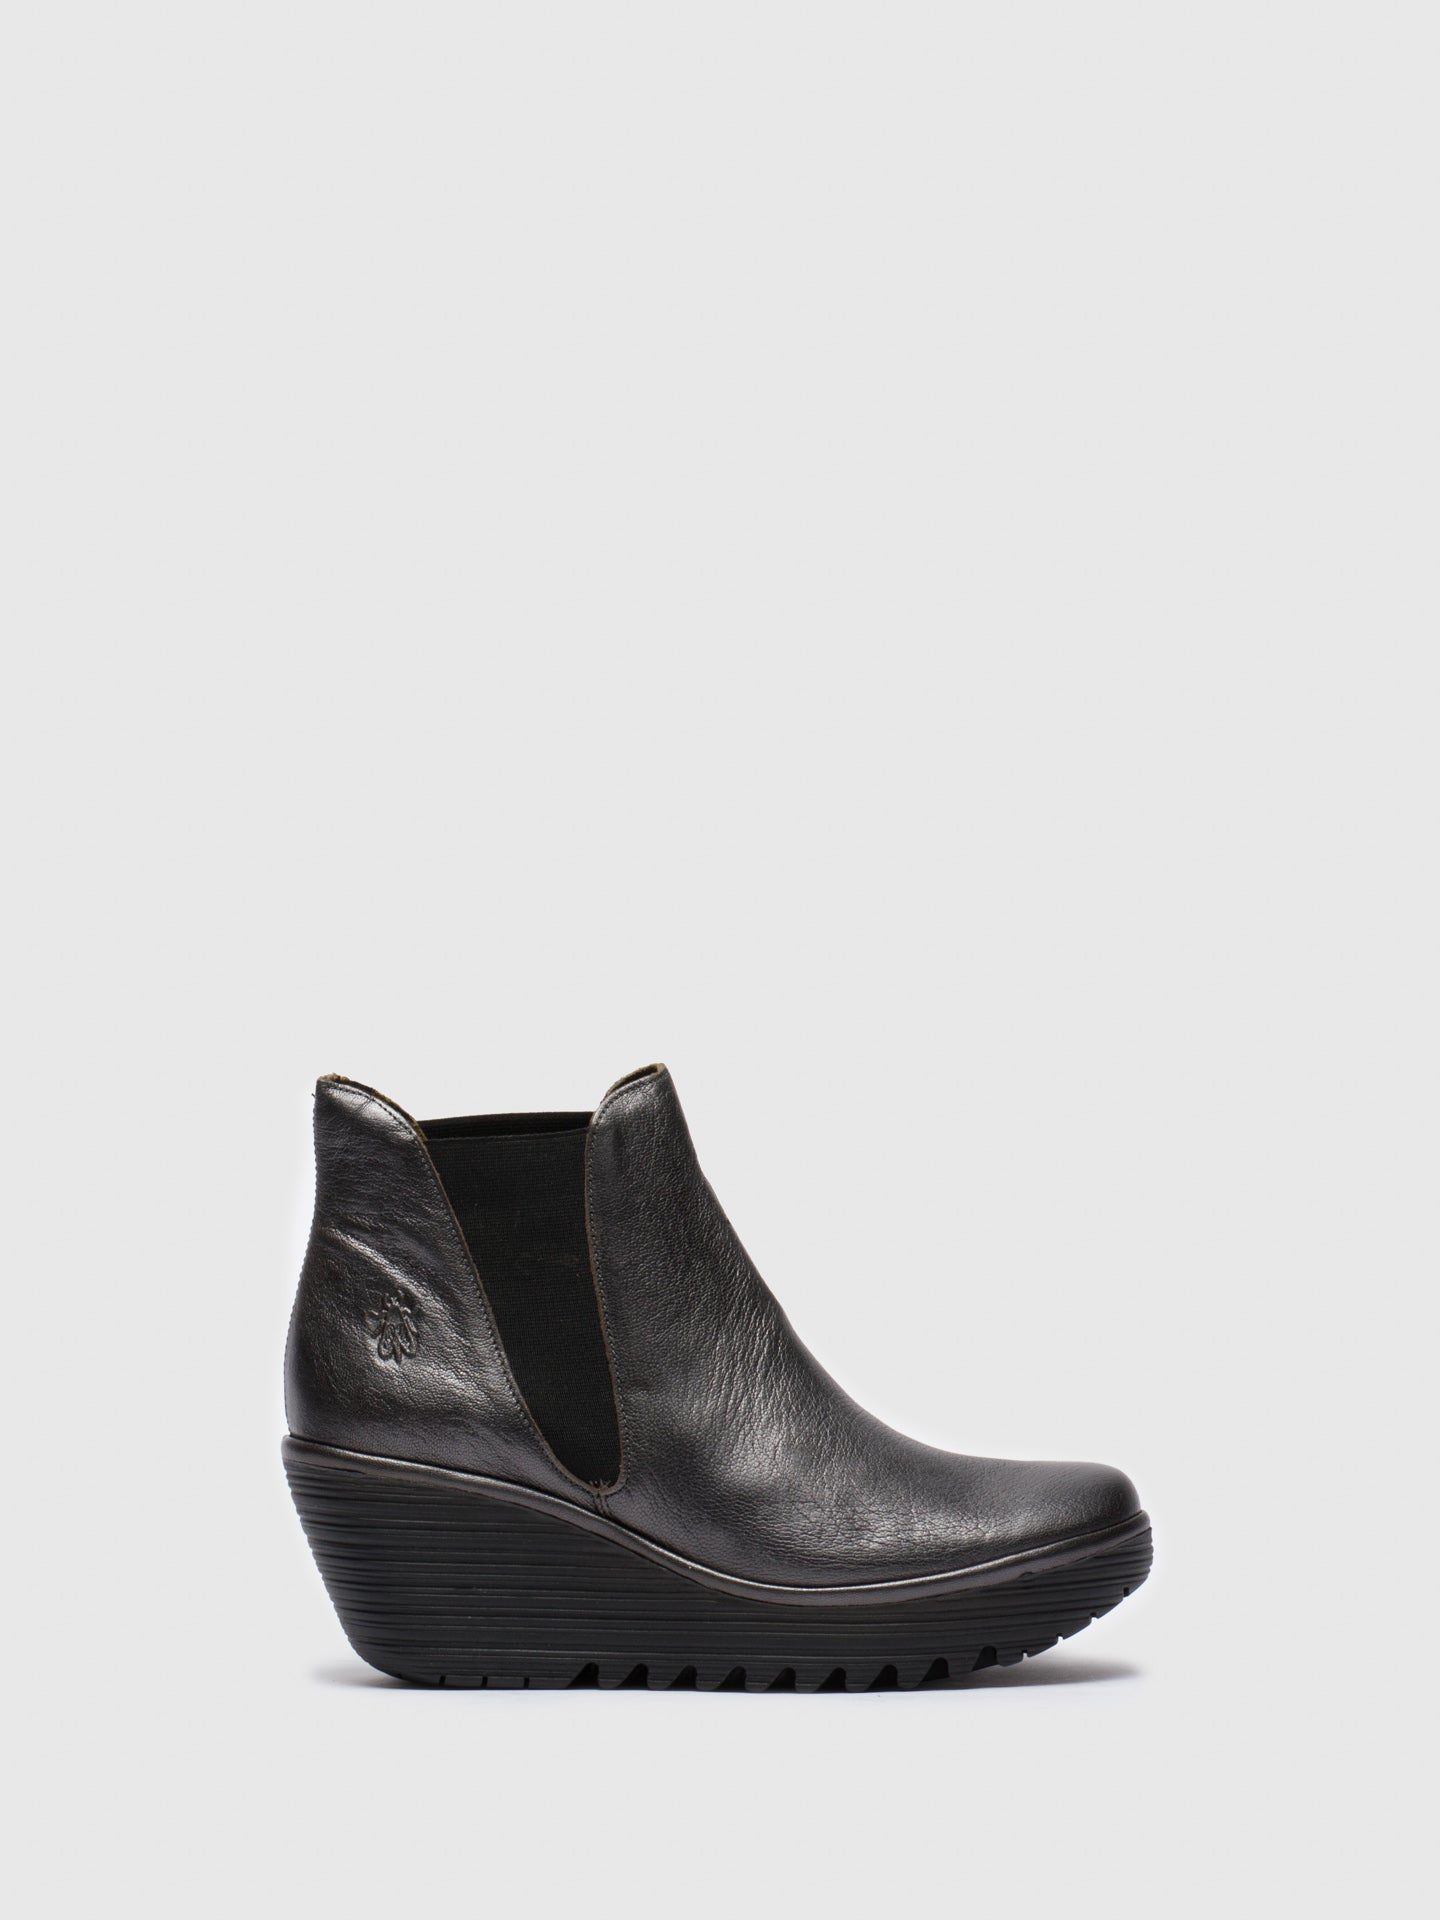 Fly London DarkGray Chelsea Ankle Boots